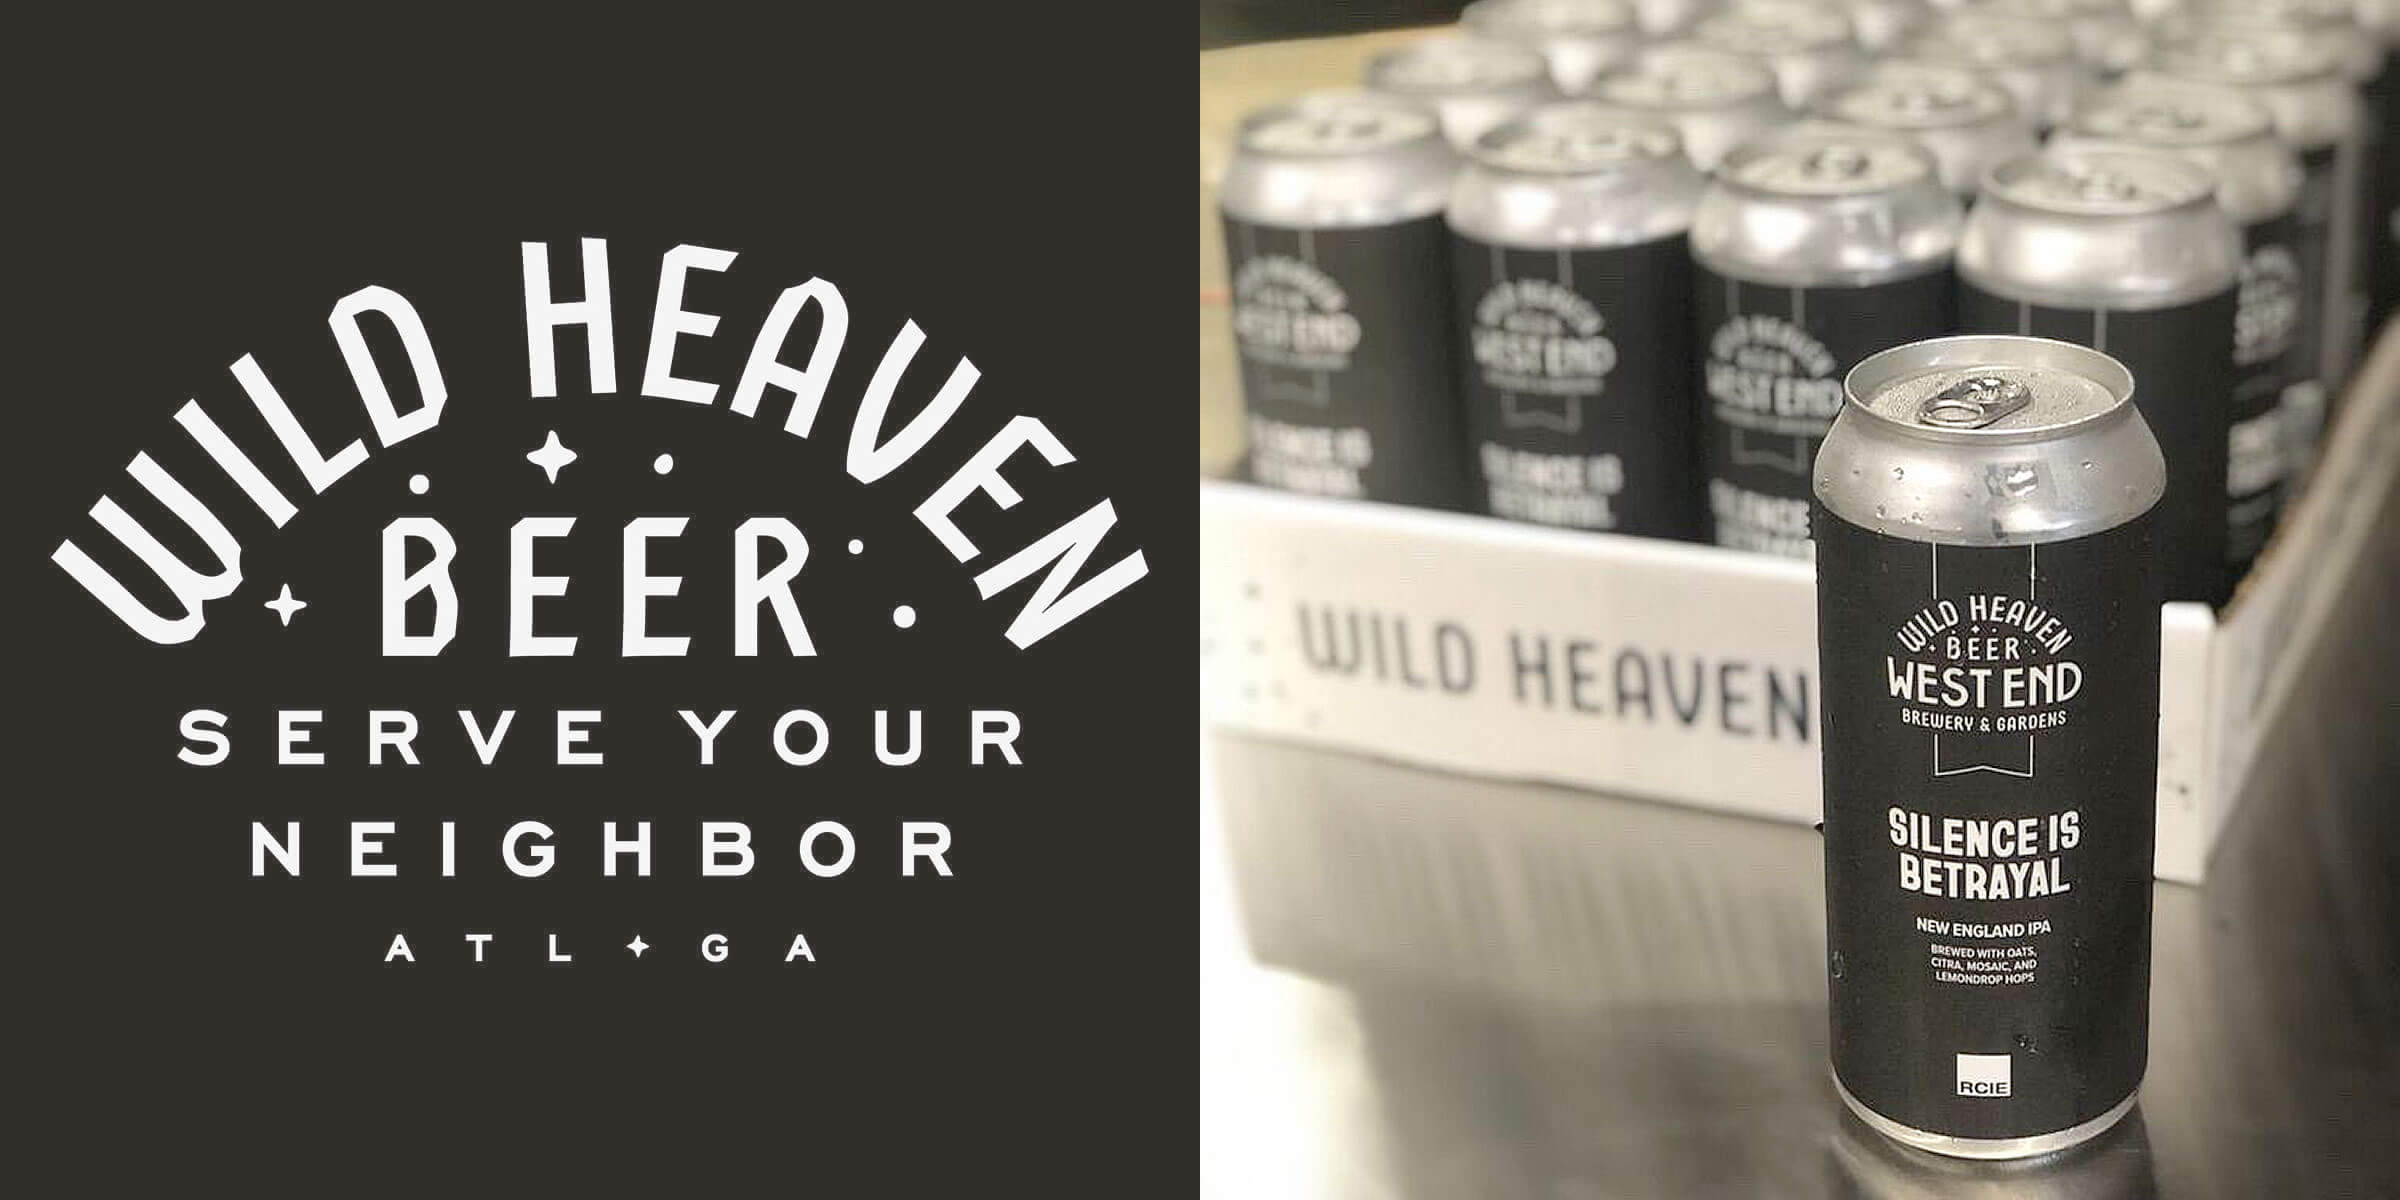 """Wild Heaven Beer is fighting racial injustice with their """"Silence Is Betrayal"""" NEIPA, whose proceeds benefit Atlanta's Russell Center for Innovation & Entrepreneurship."""